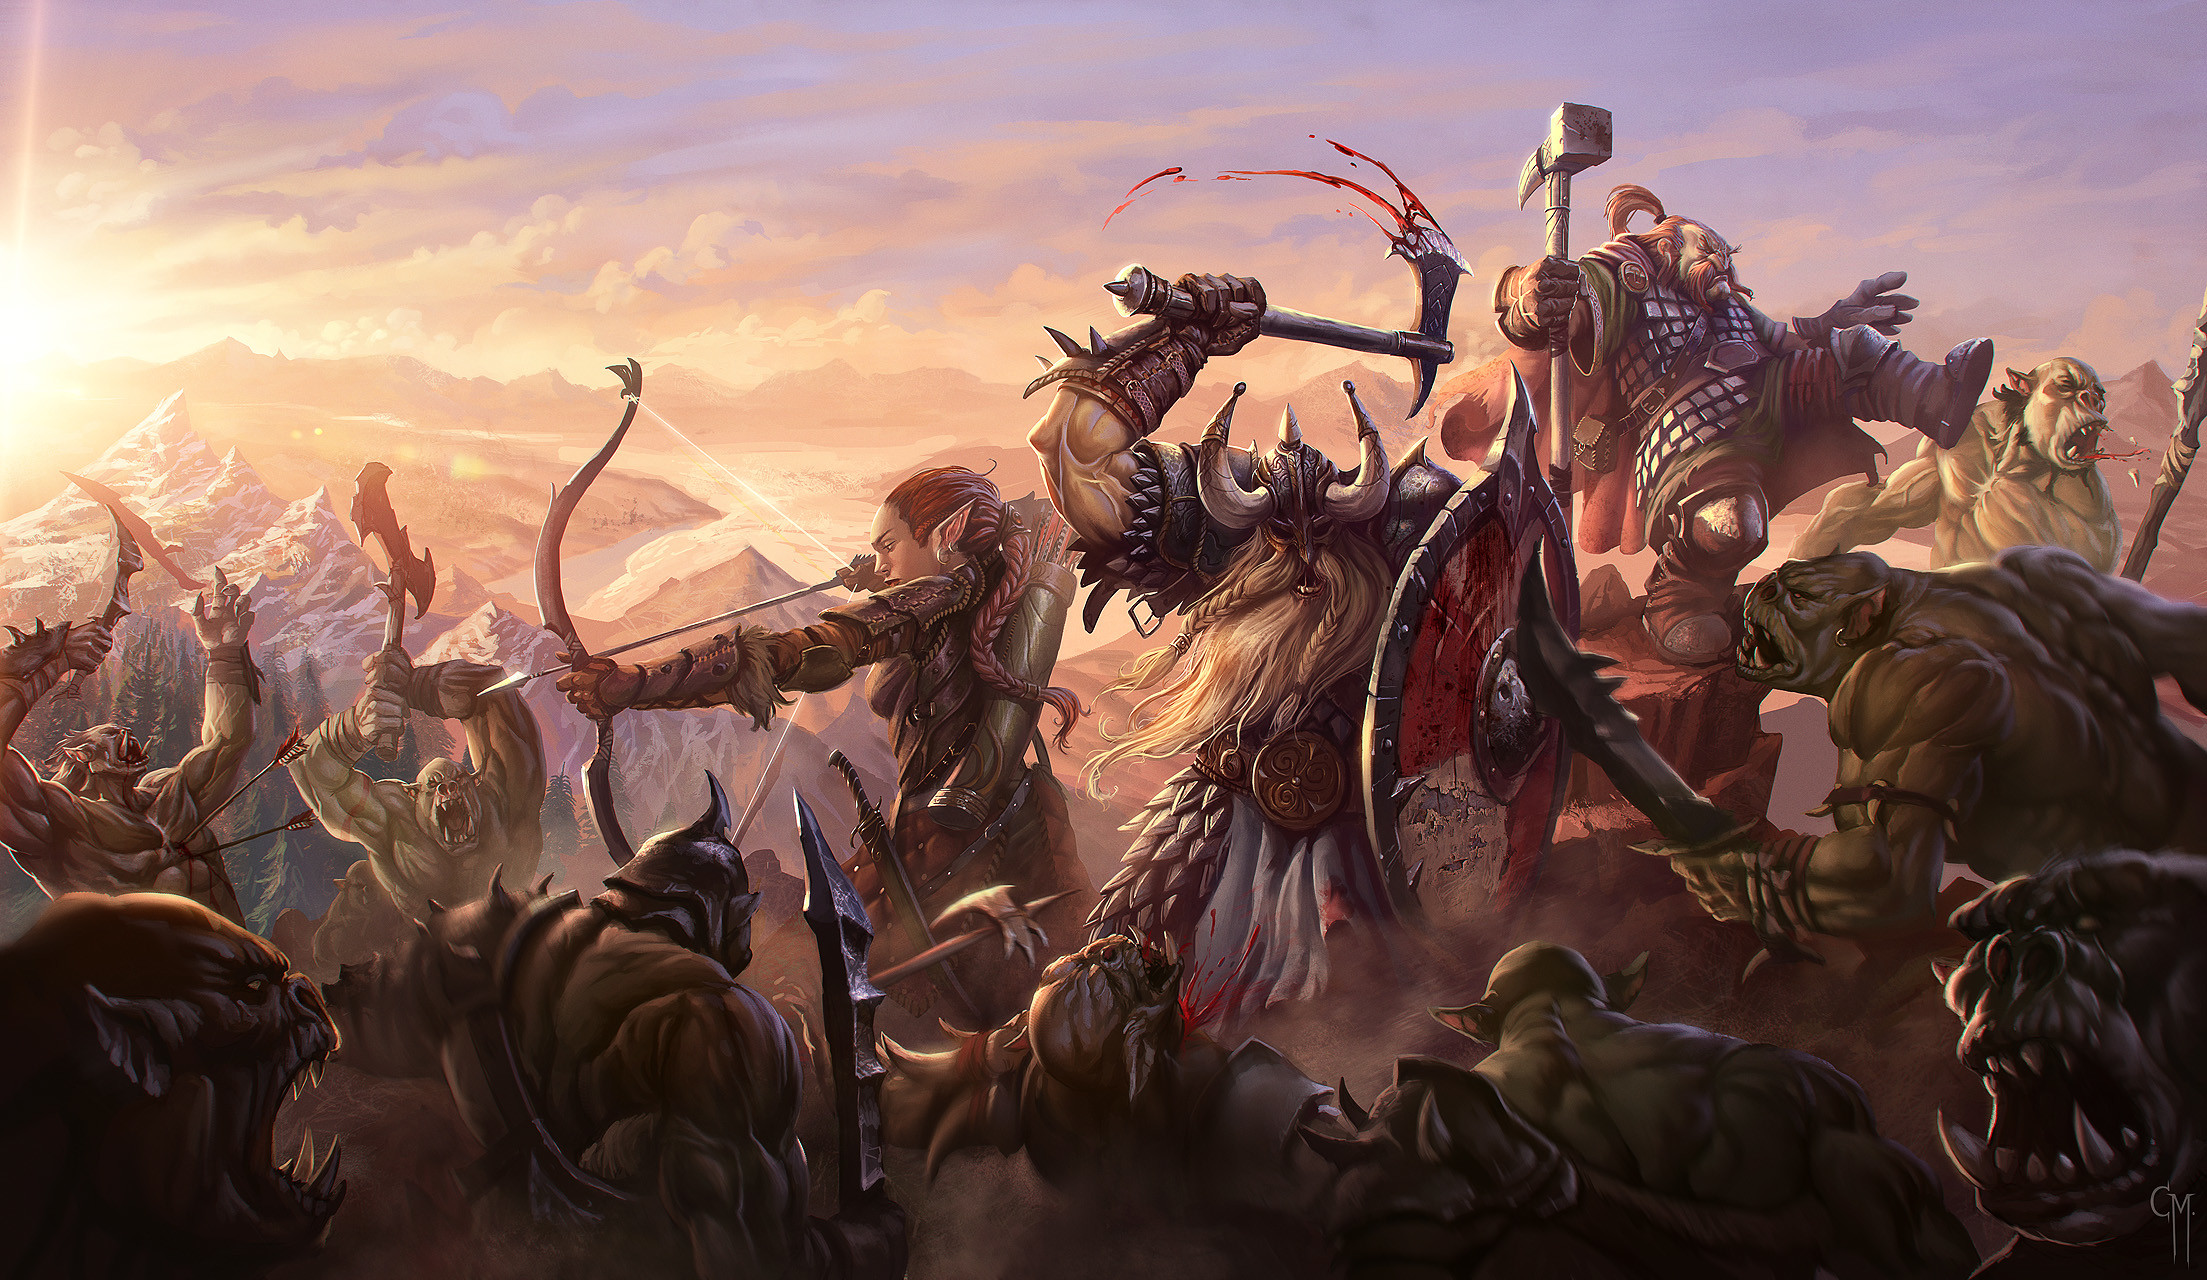 2207x1280 Final Battle by Hamsterfly | Inspiration | Pinterest | Art reference and  Artwork